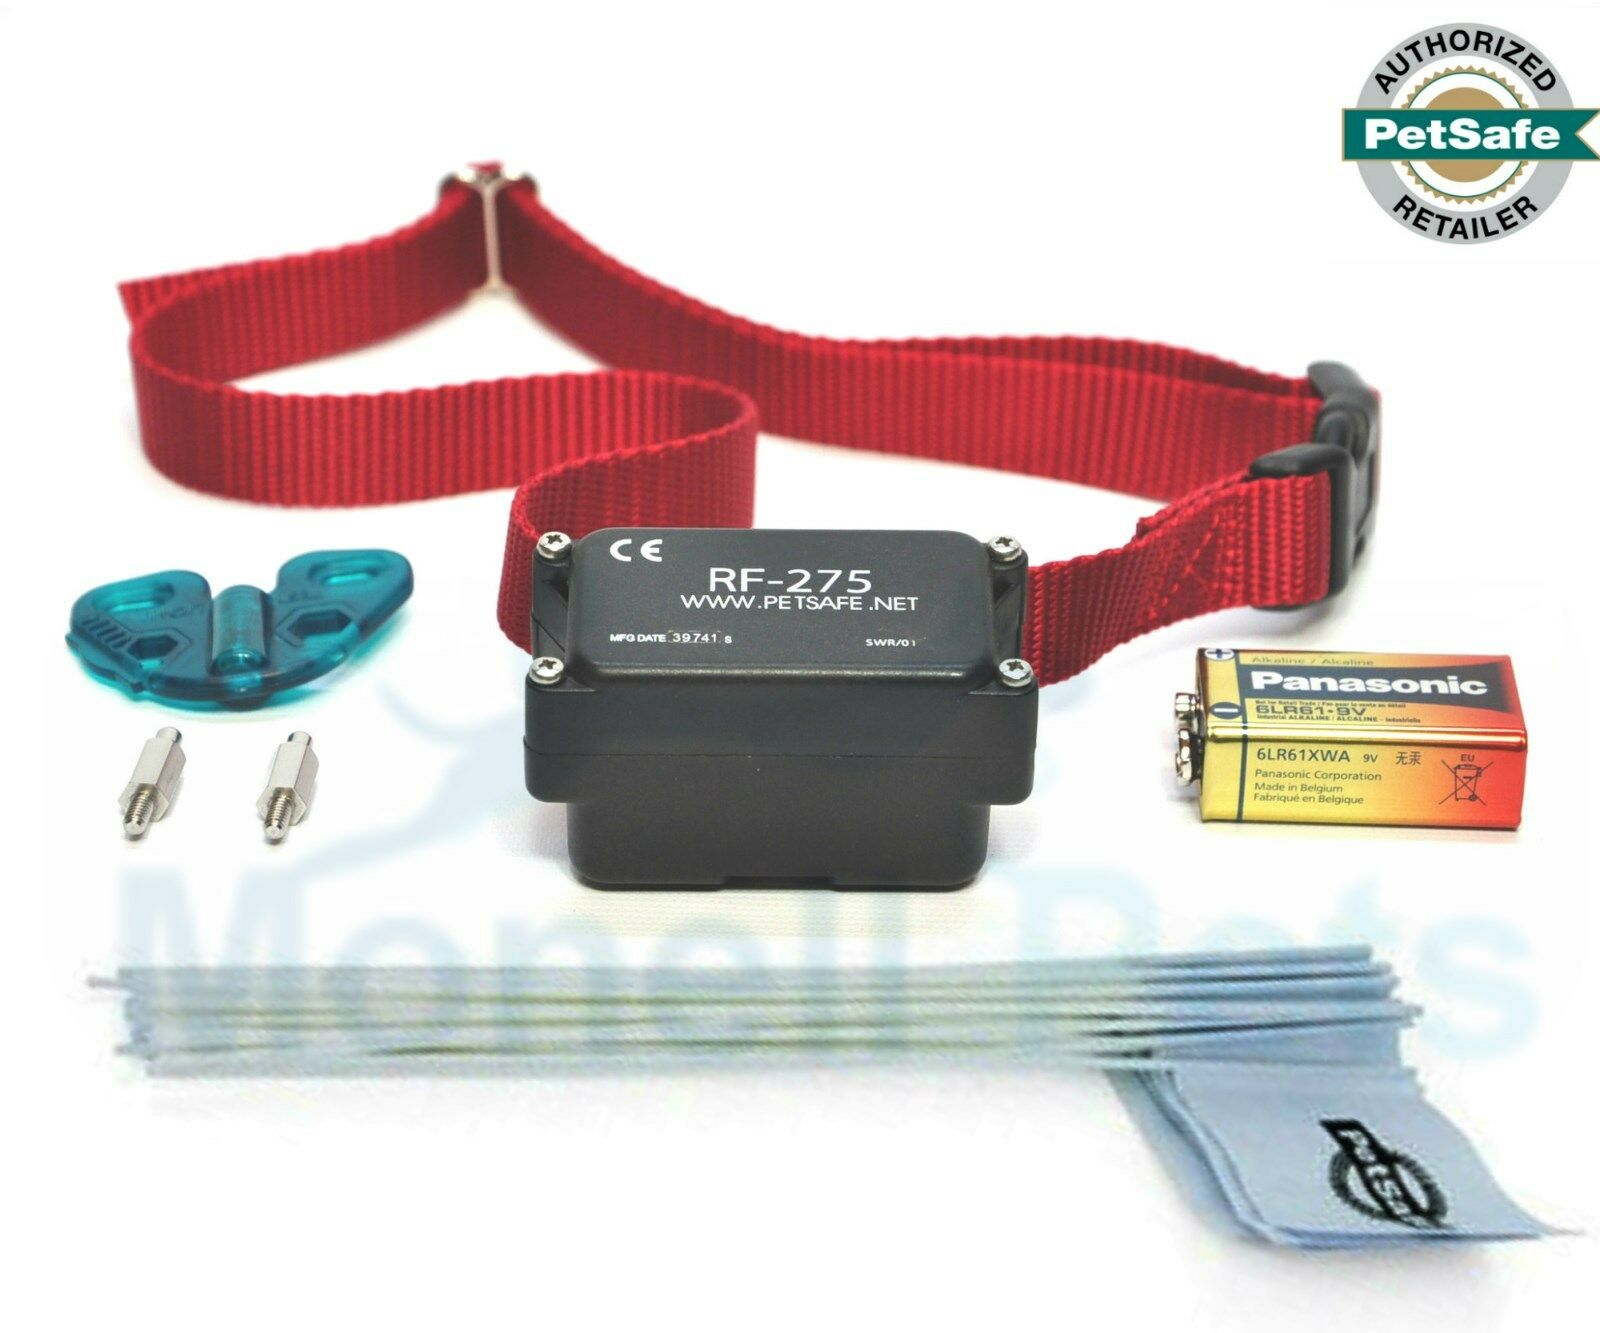 Petsafe Stubborn Dog Fence Collar Receiver PRF-275-19 with 50 Training Flags